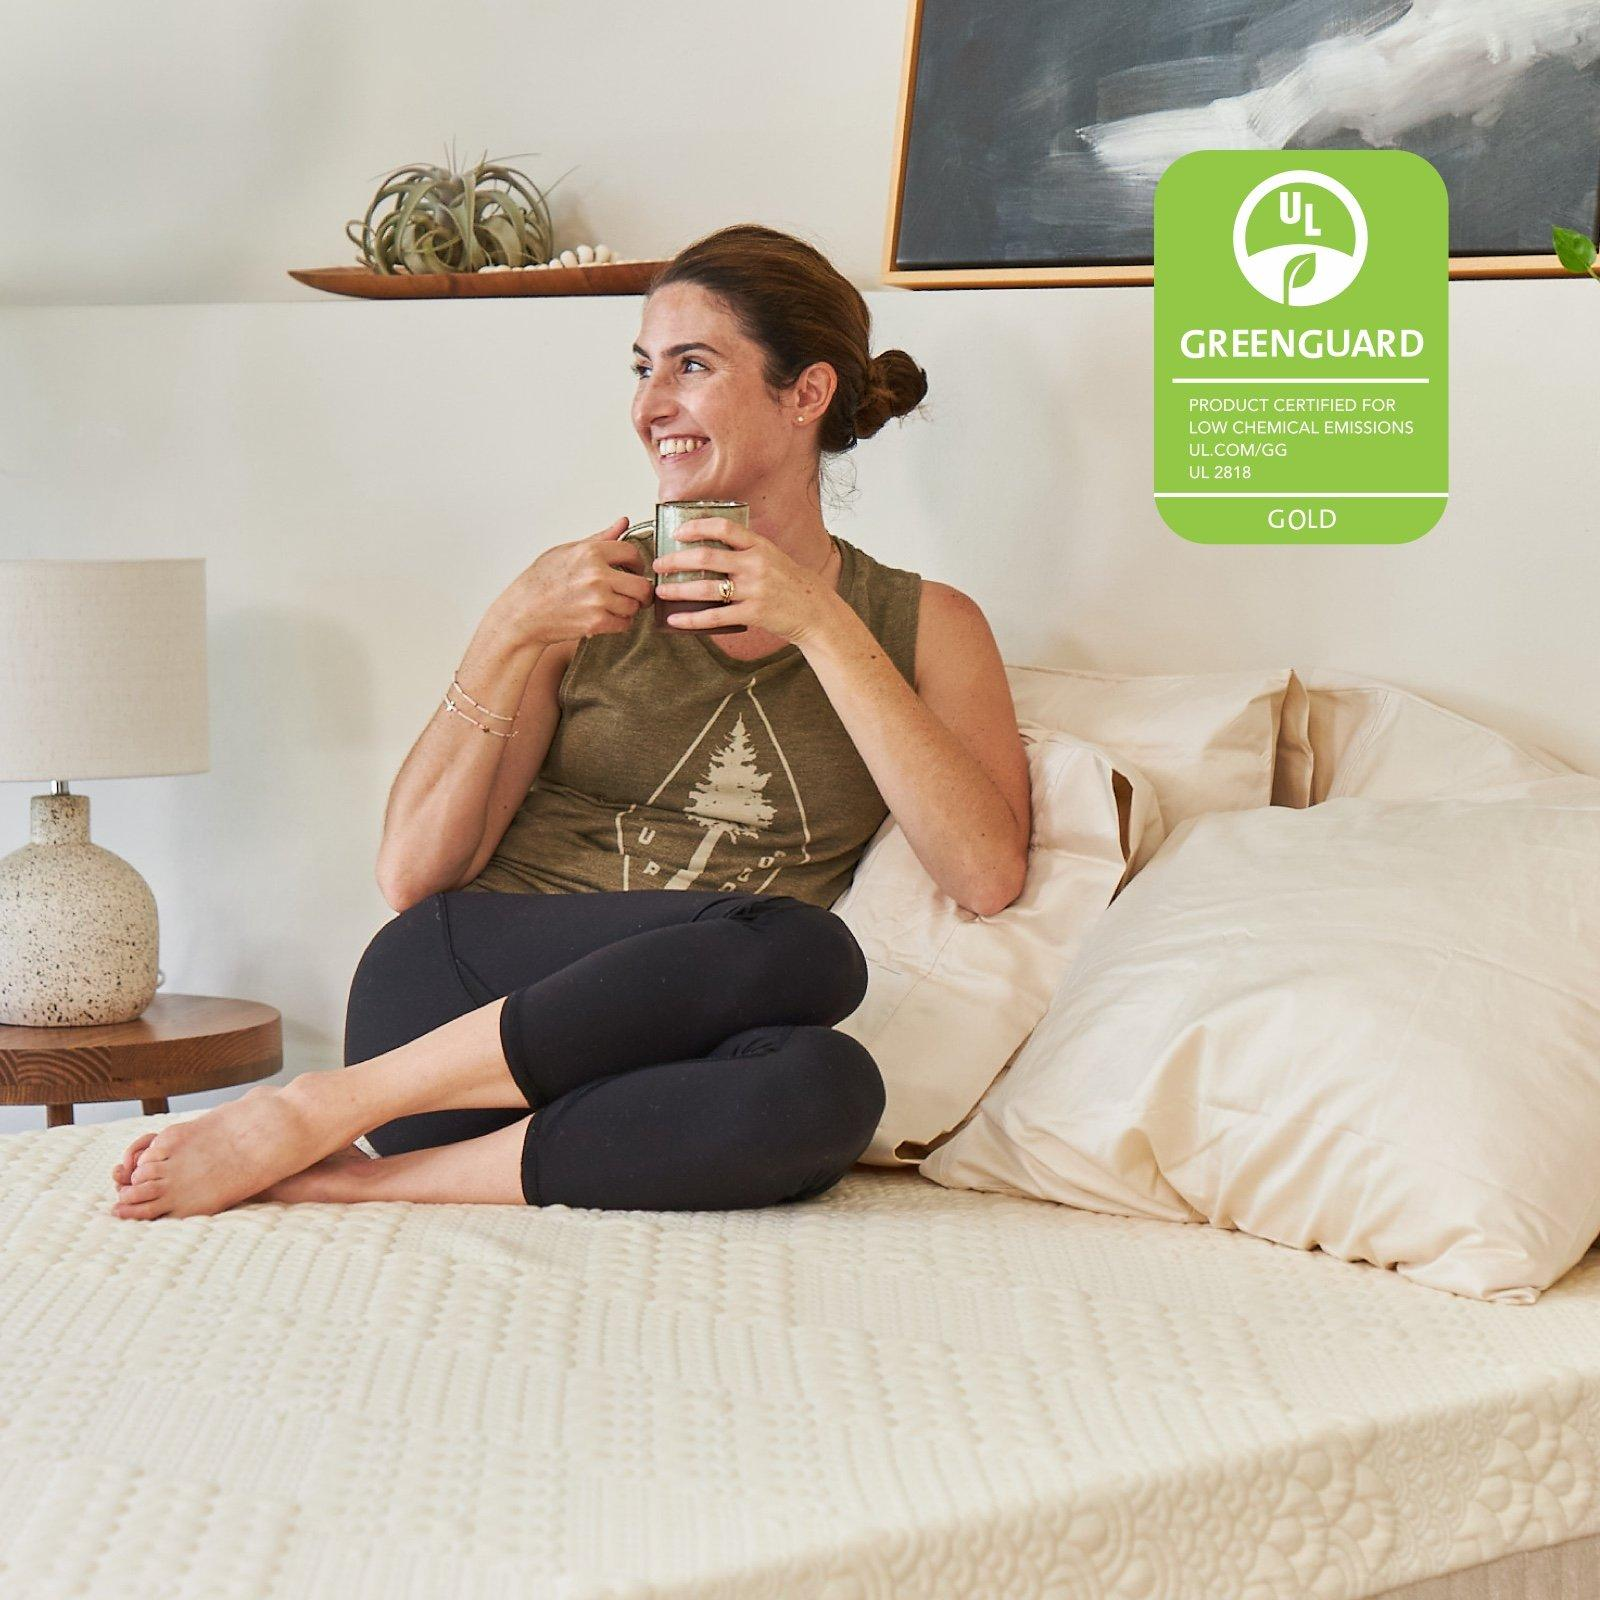 The Brentwood Home Hybrid Latesx is certified by Greenguard Gold. This certification ensures that there are no VOCs offgassing from the mattress that are above an allowable threshold.